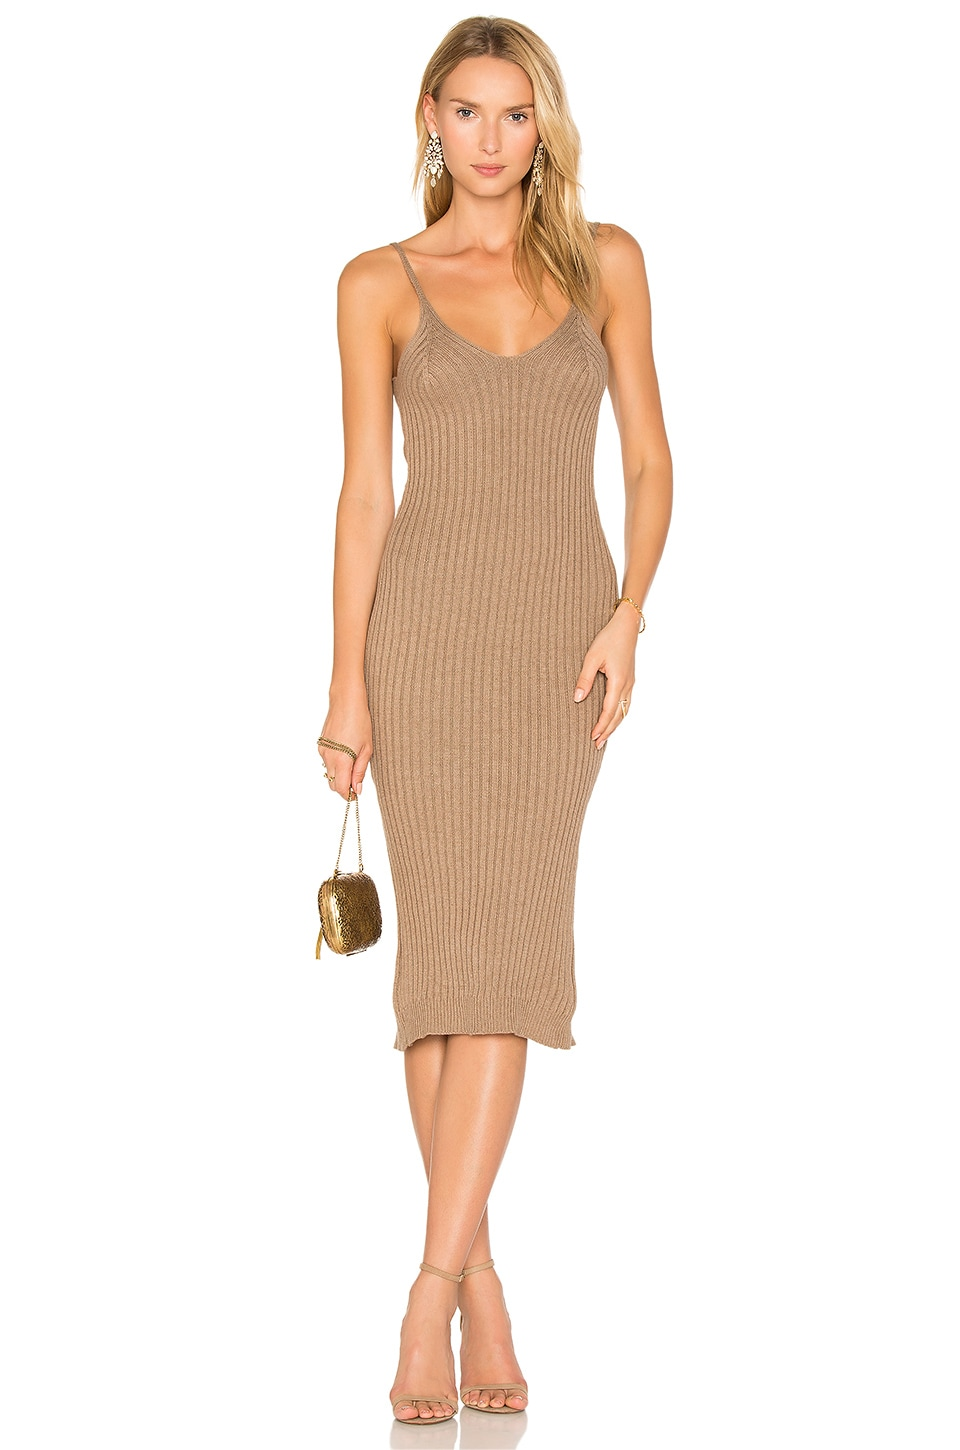 TROIS Sims Dress in Sand